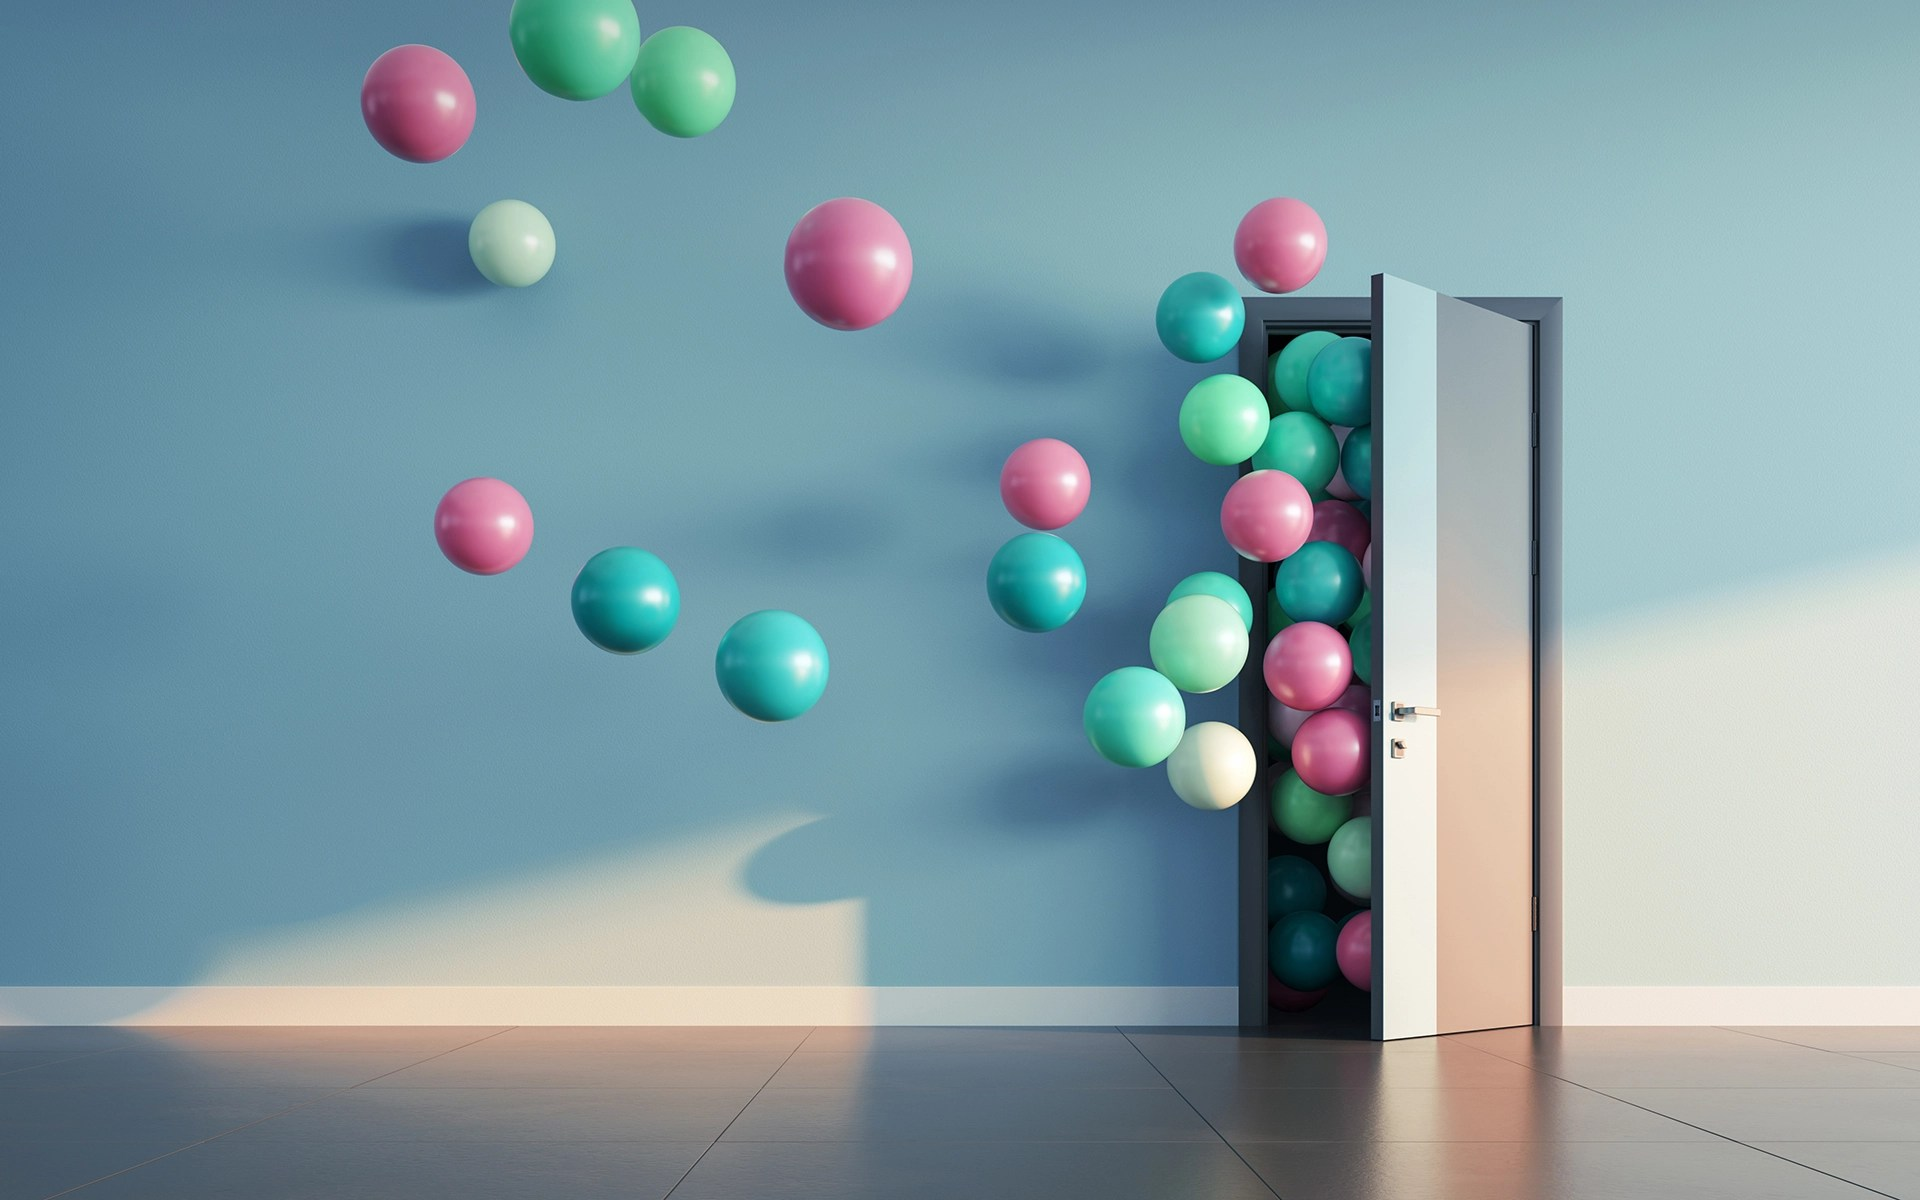 Why Mindfulness Isn't About Control - Balloons fly away through open door